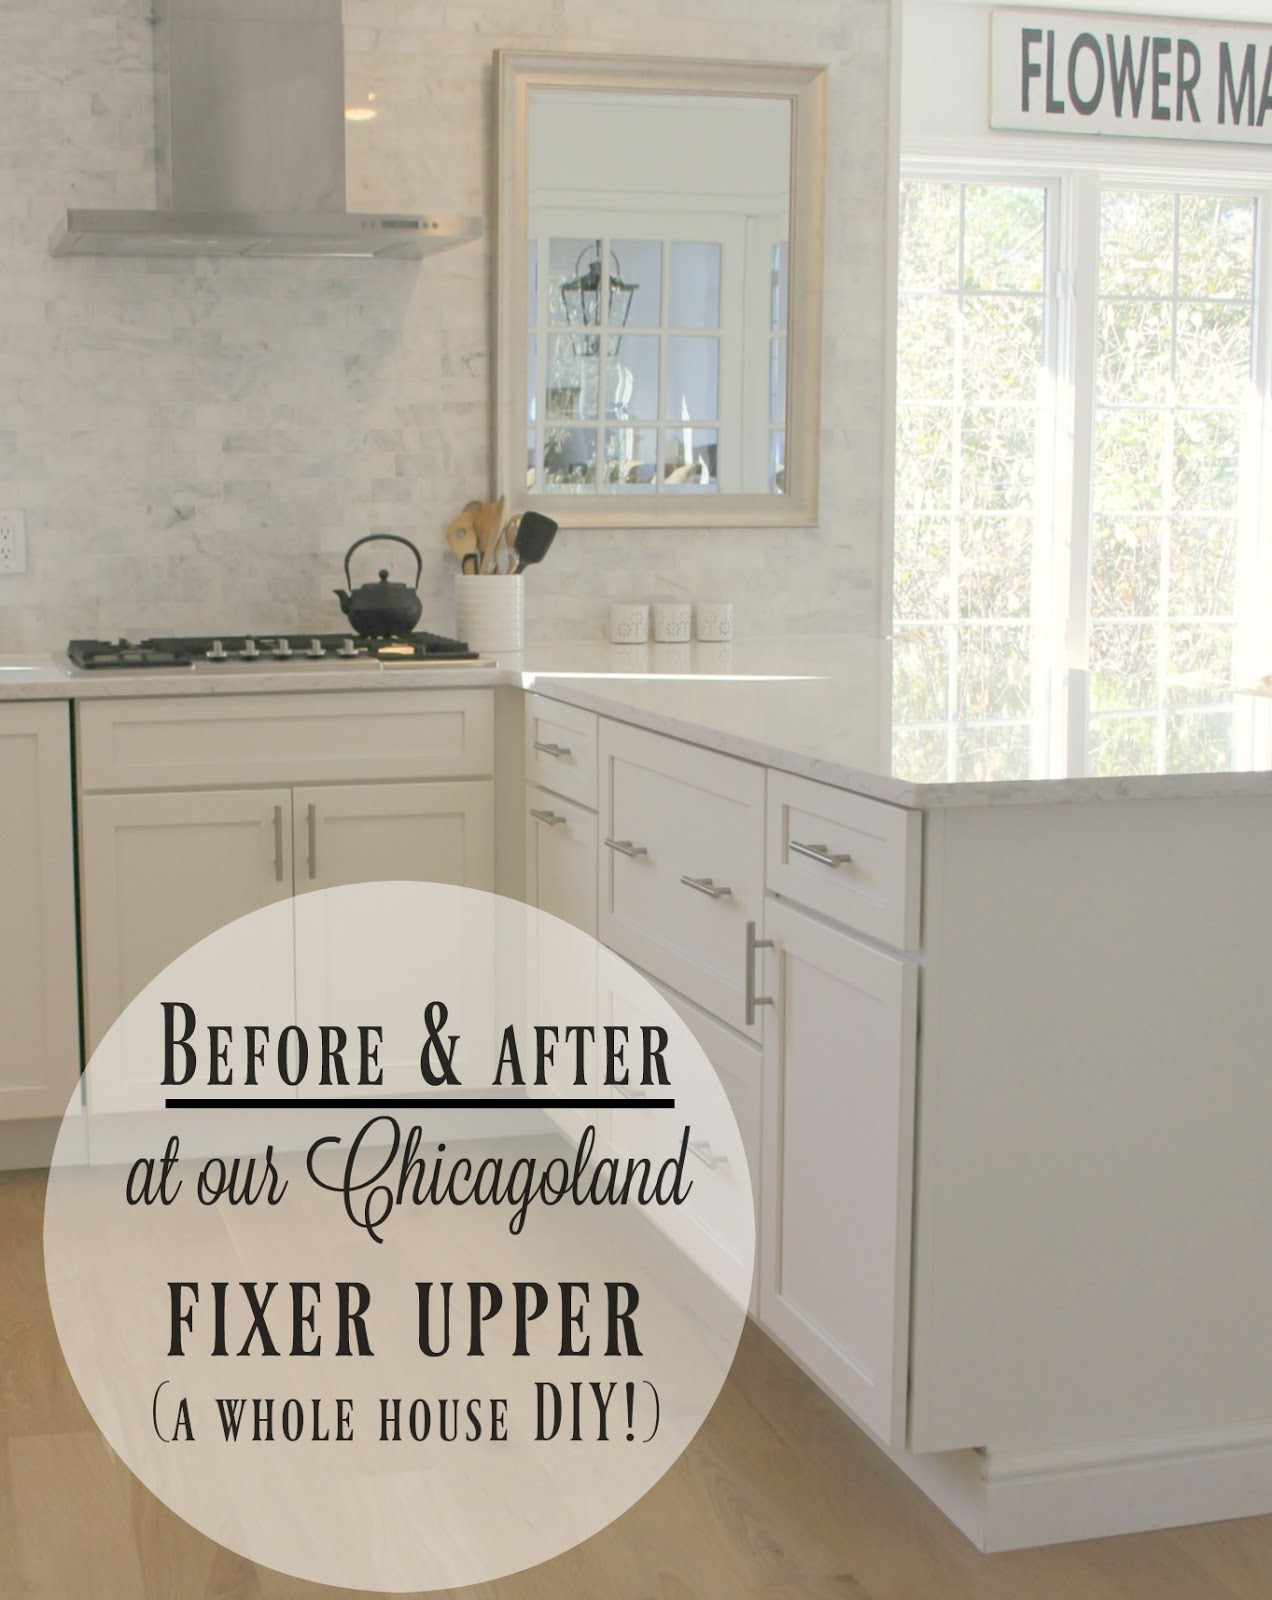 Fixer upper kitchen cabinet pulls - Fixer Upper 1